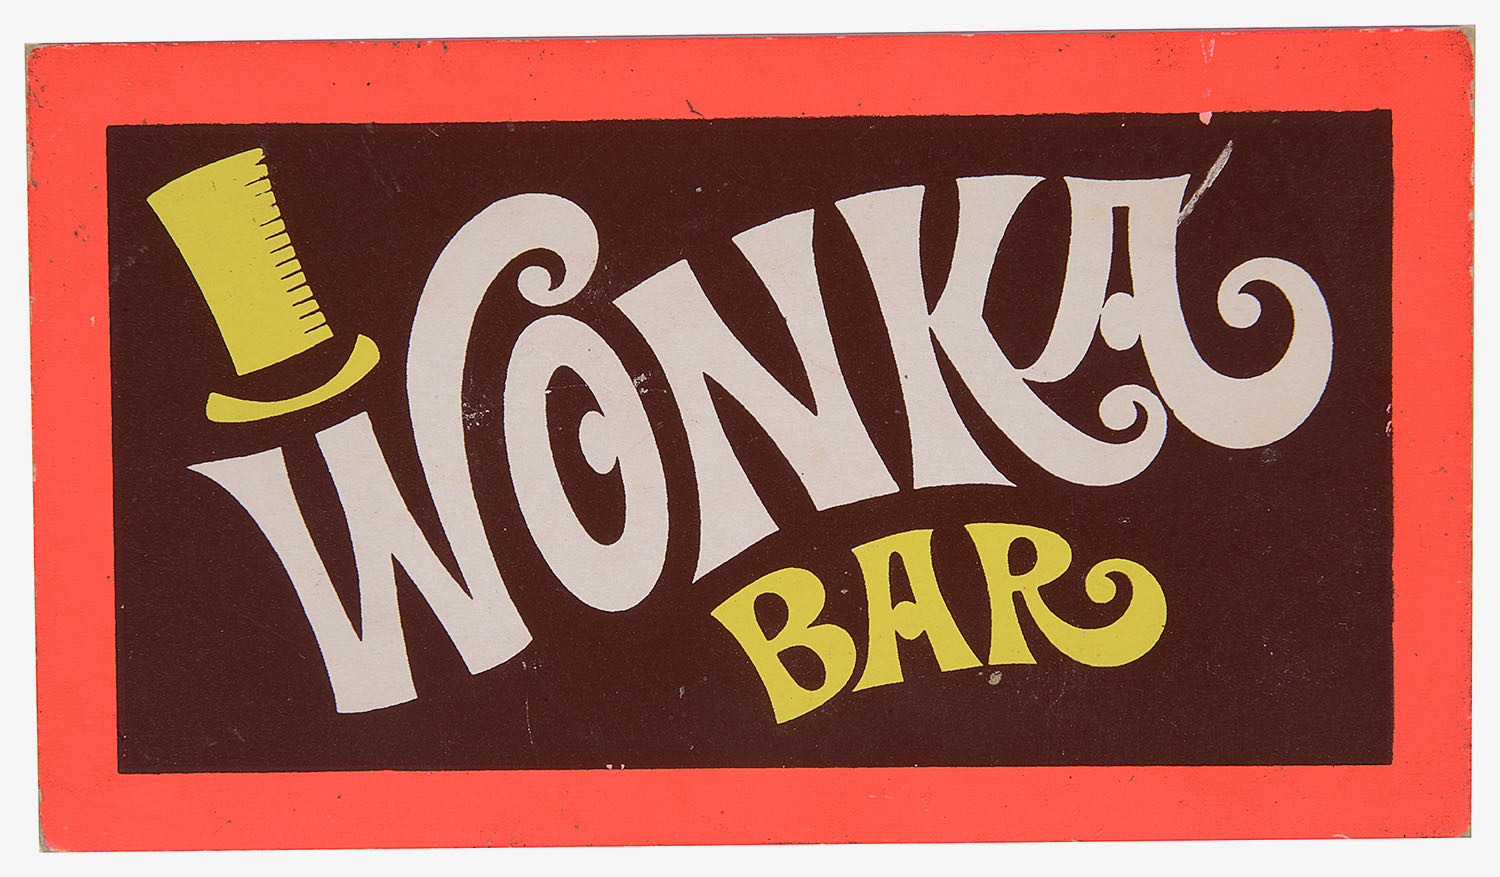 Lot 87 - A Golden Ticket and Wonka Bar from Willy Wonka & the Chocolate Factory